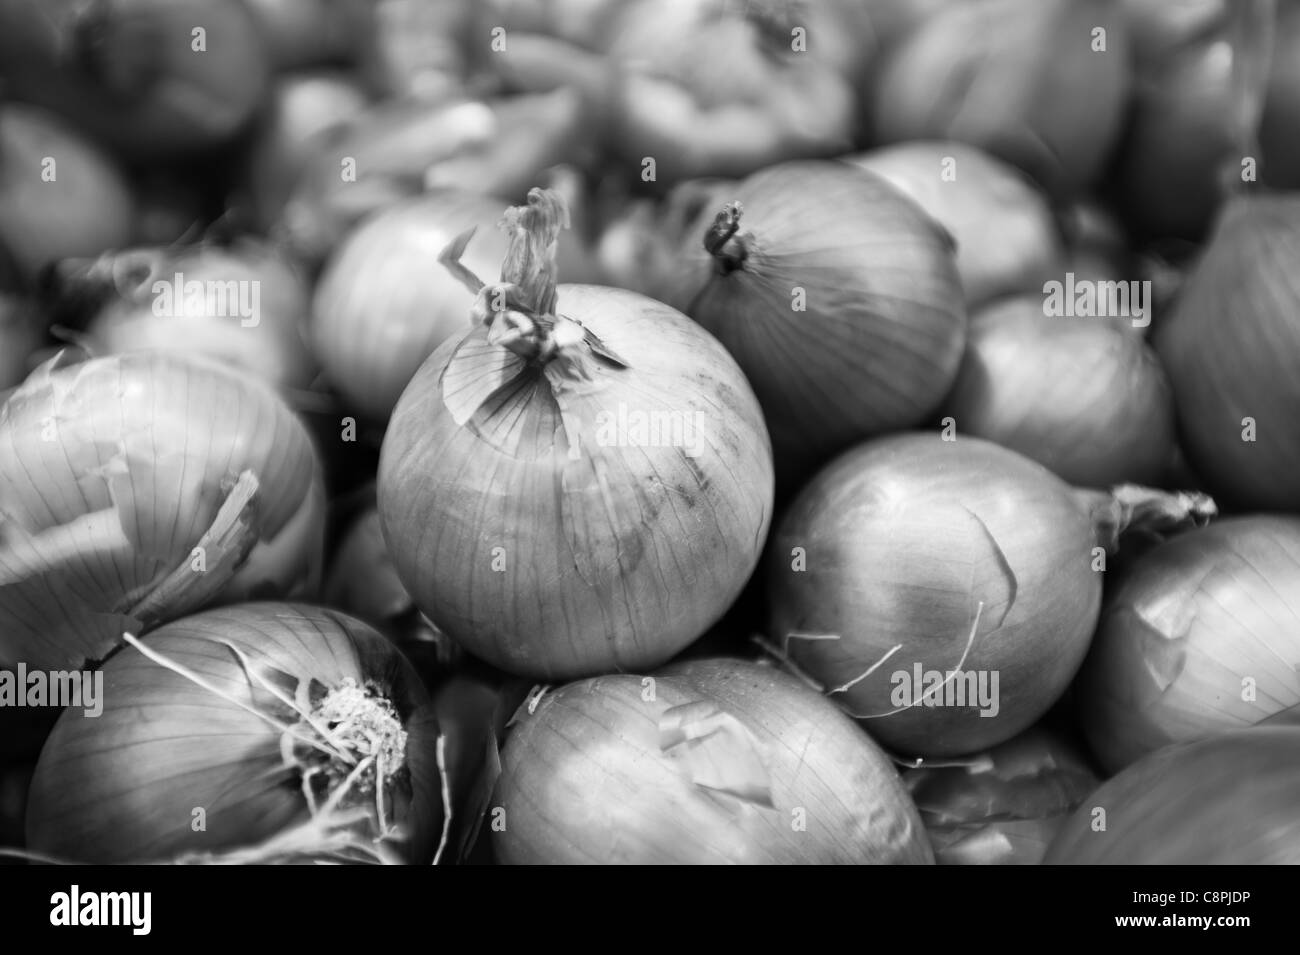 Black and white onions in a food stand. - Stock Image